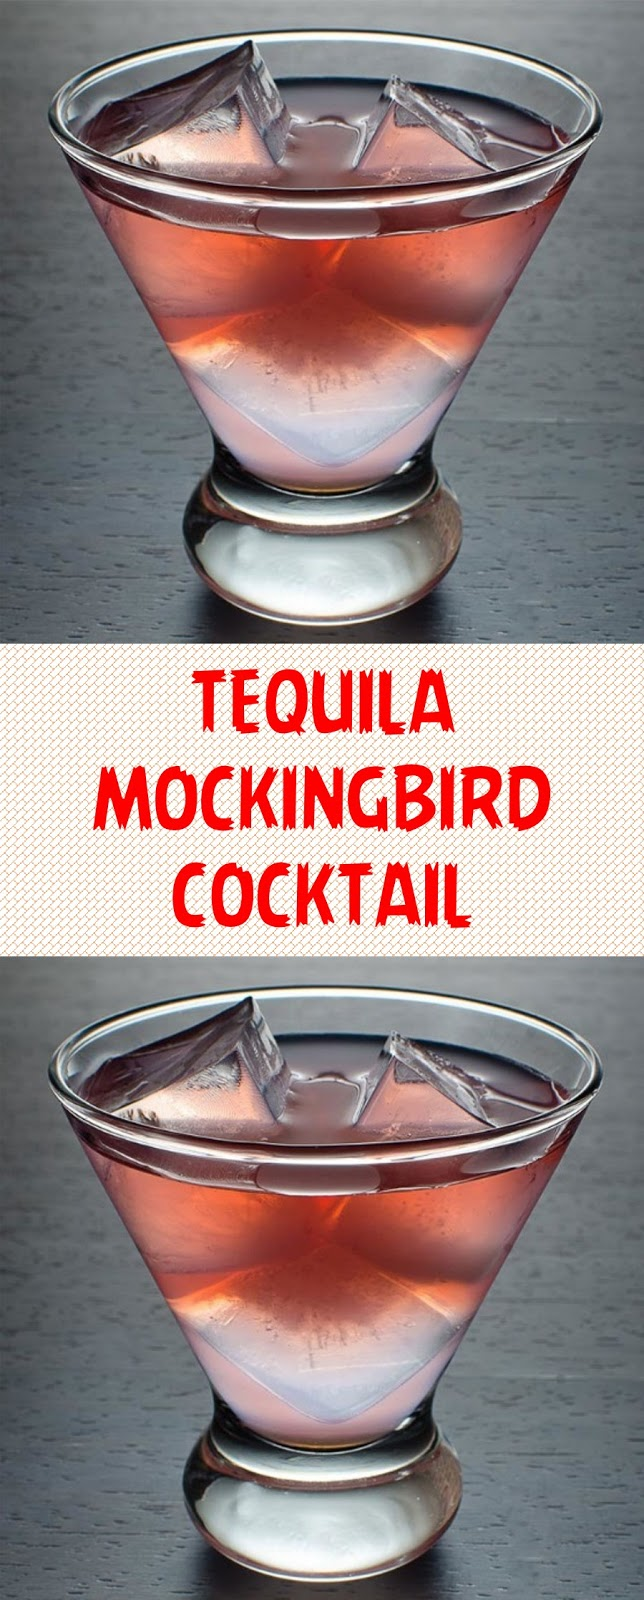 TEQUILA MOCKINGBIRD COCKTAIL